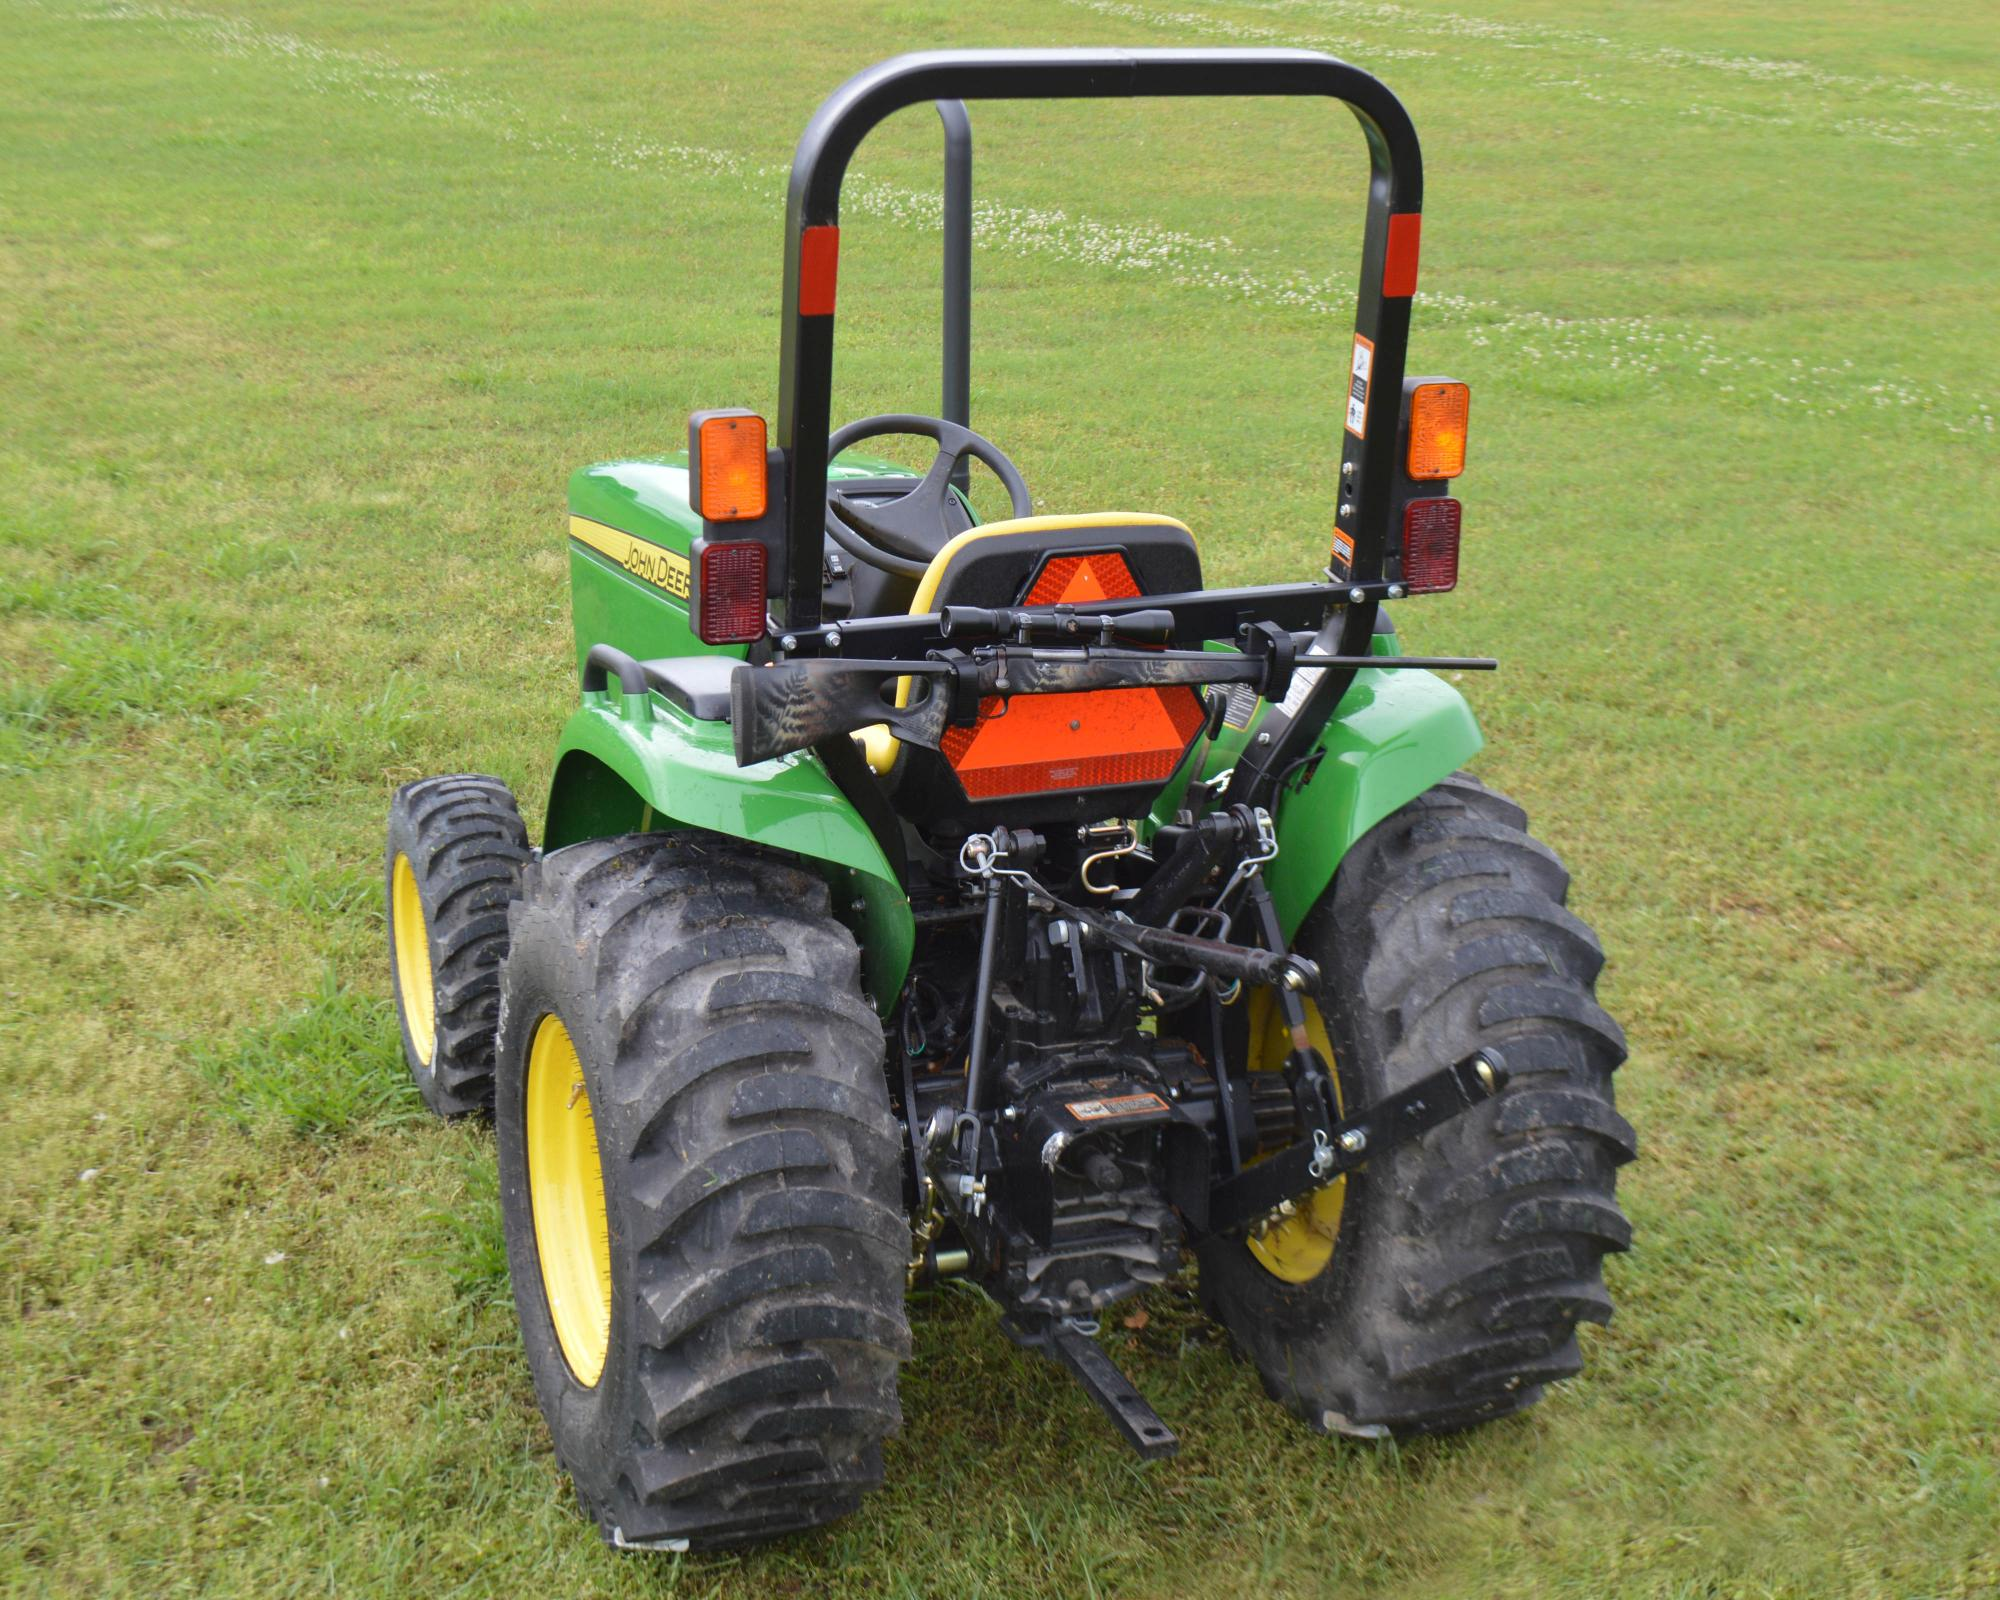 The Tractor Amp Mower Tag Along Rack Atv Illustrated